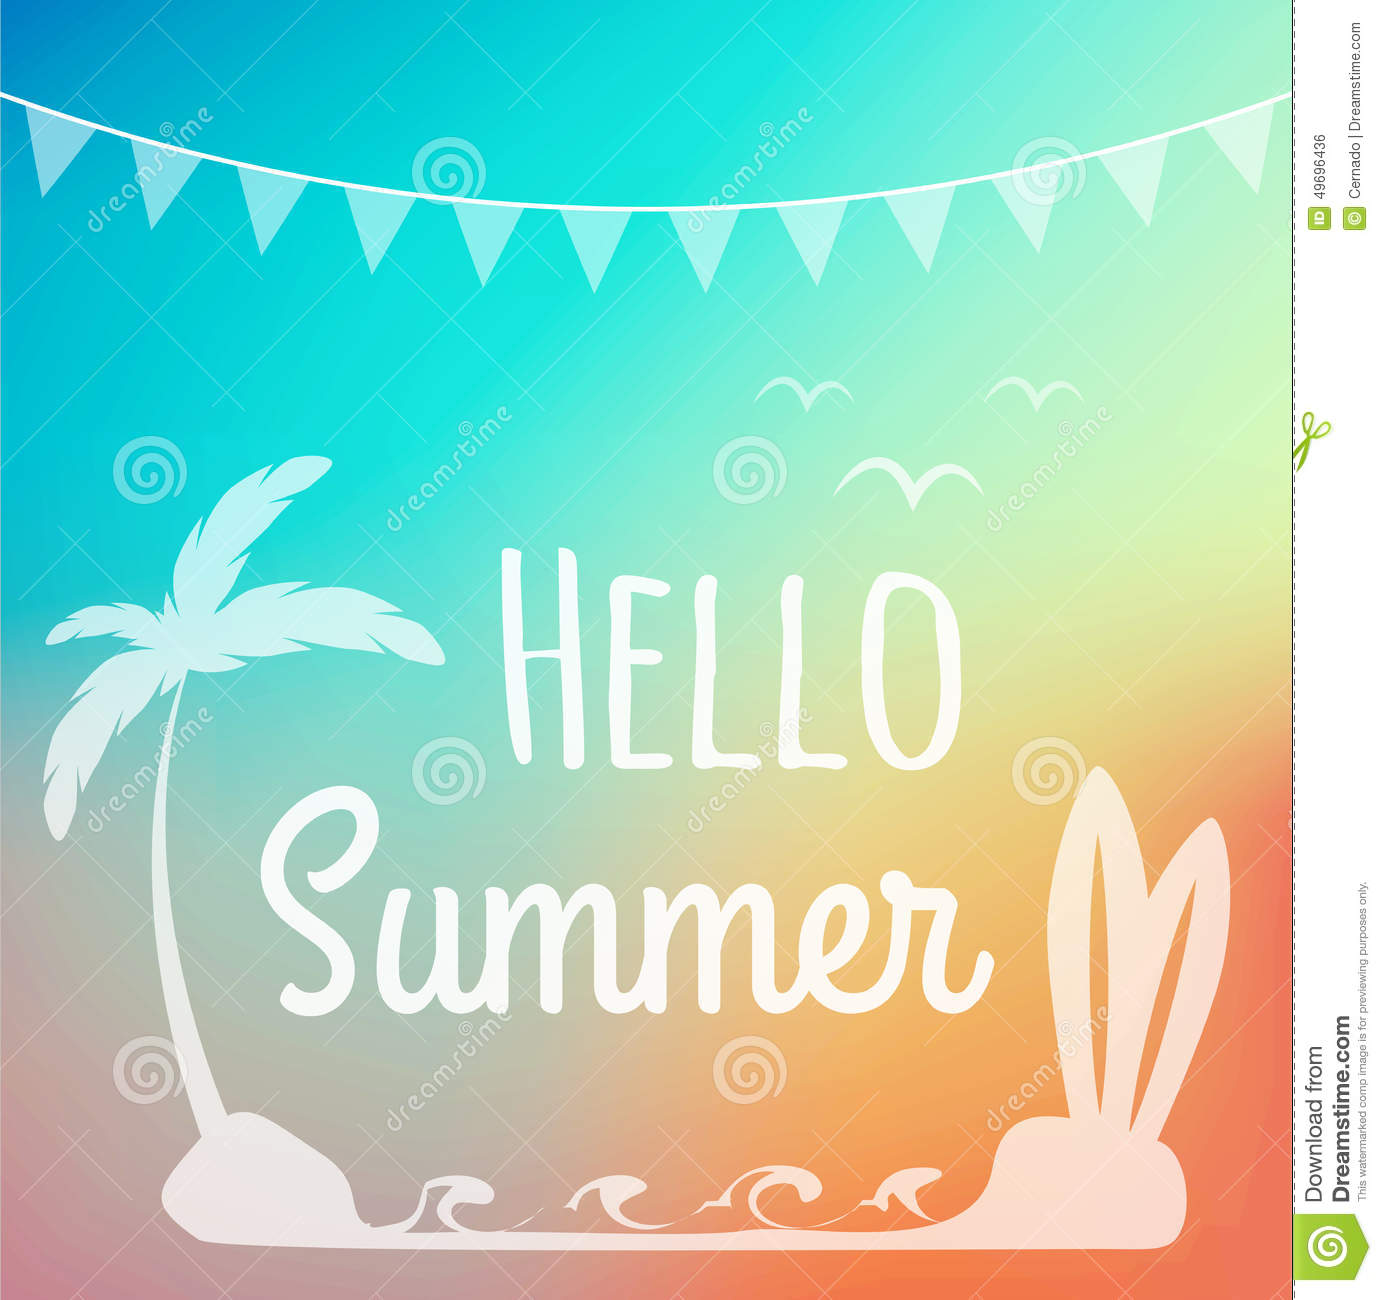 Hello Summer Stock Vector - Image: 49696436